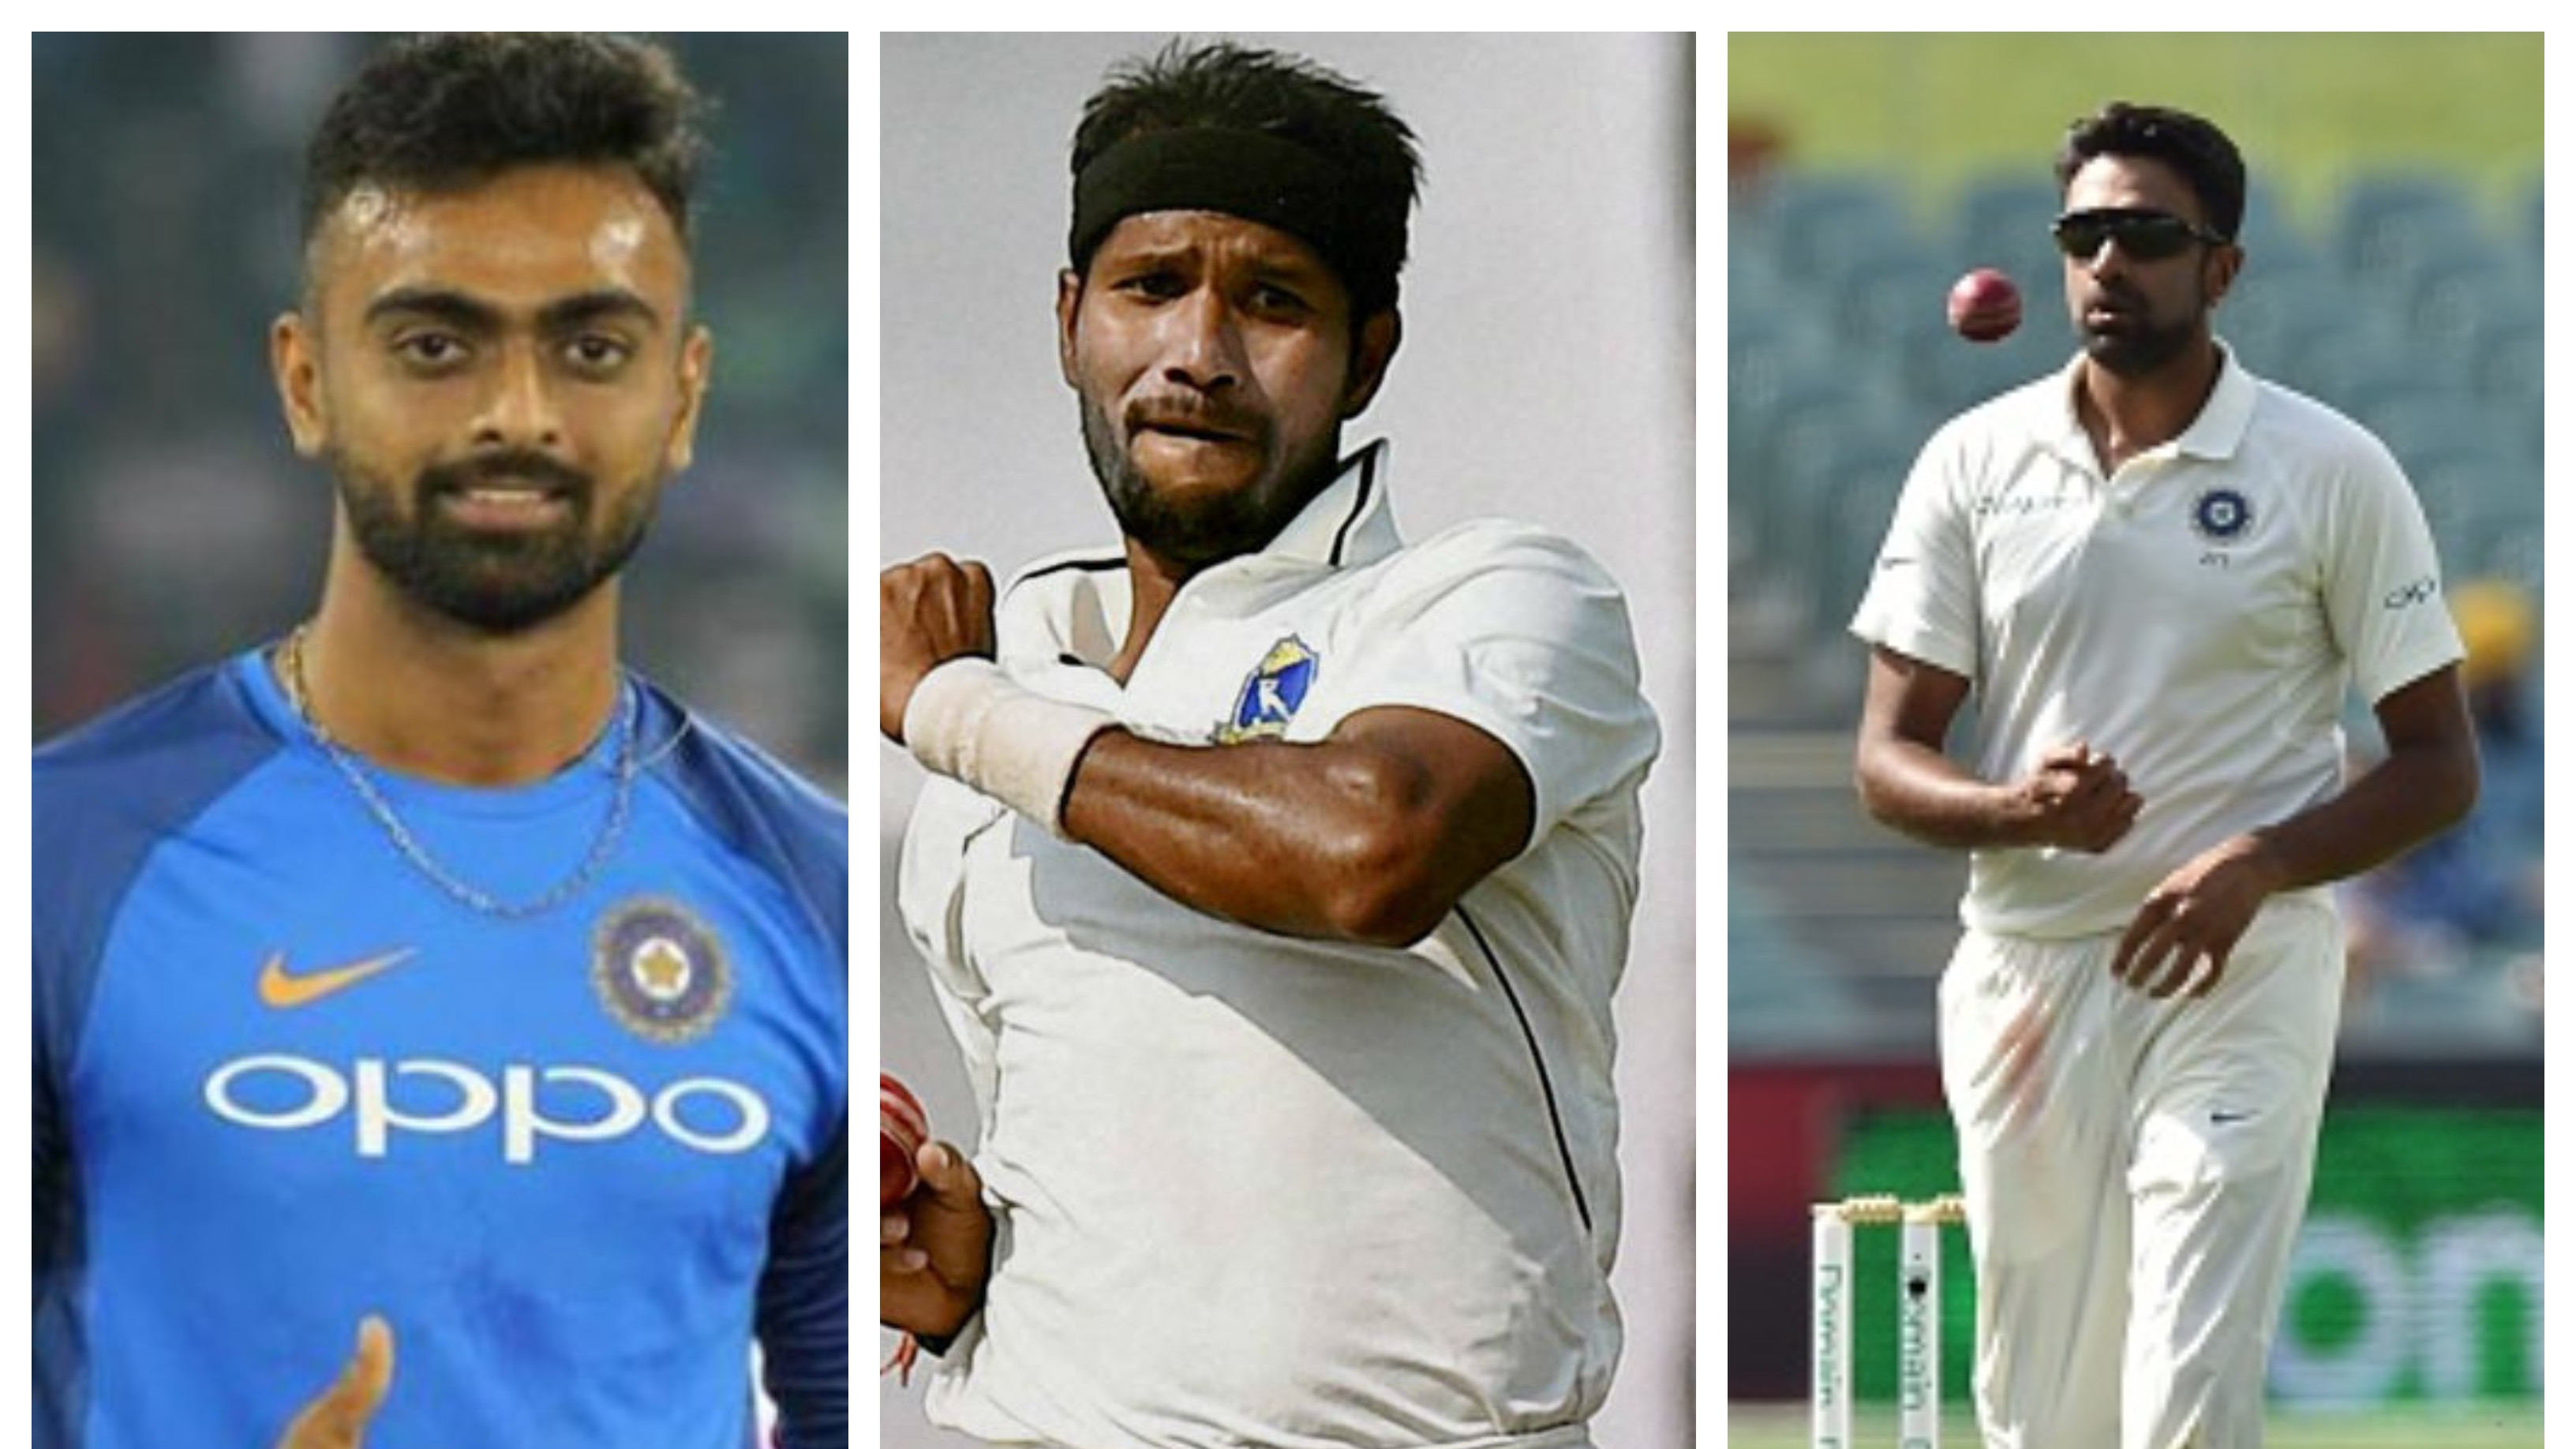 Ashoke Dinda endorses Ashwin and Unadkat's idea to have protective gear available for bowlers